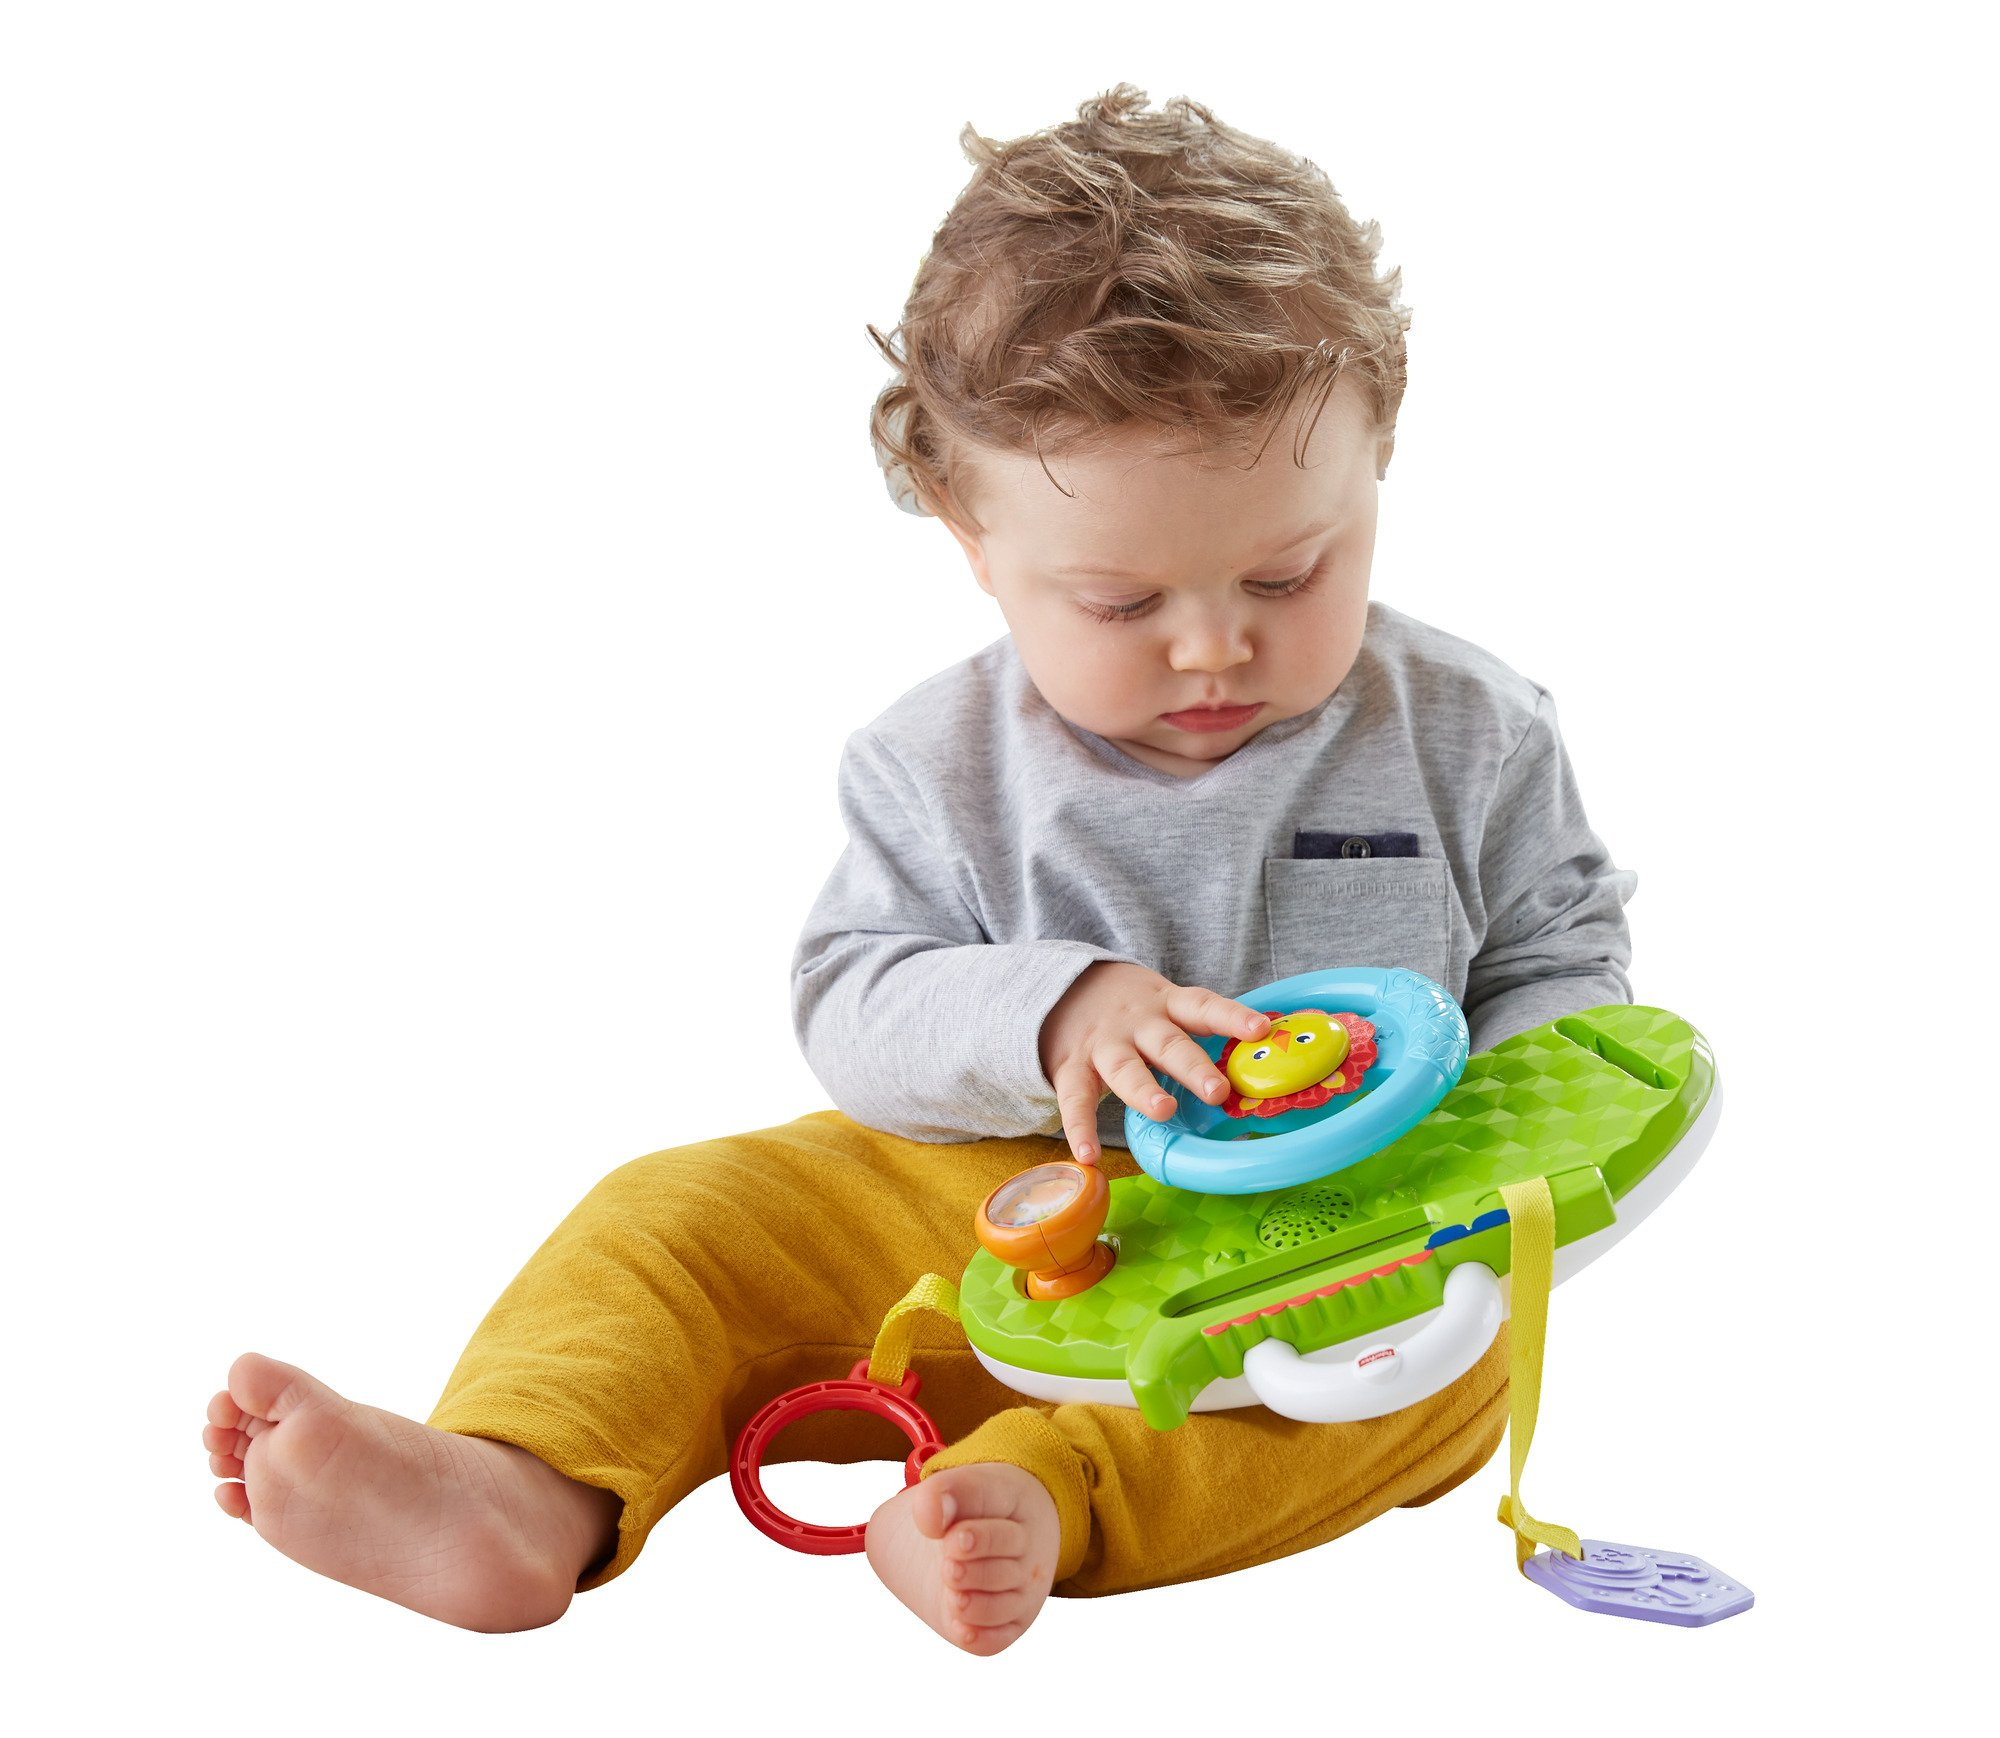 Fisher-Price Rolling and Strolling Dashboard, New-born Activity Toy with Music Sounds Fisher-Price  Attaches to stroller for playtime on the go  Turn the lion steering wheel to hear short songs  Push the lion's face for silly sound effects (Beep beep!) 4